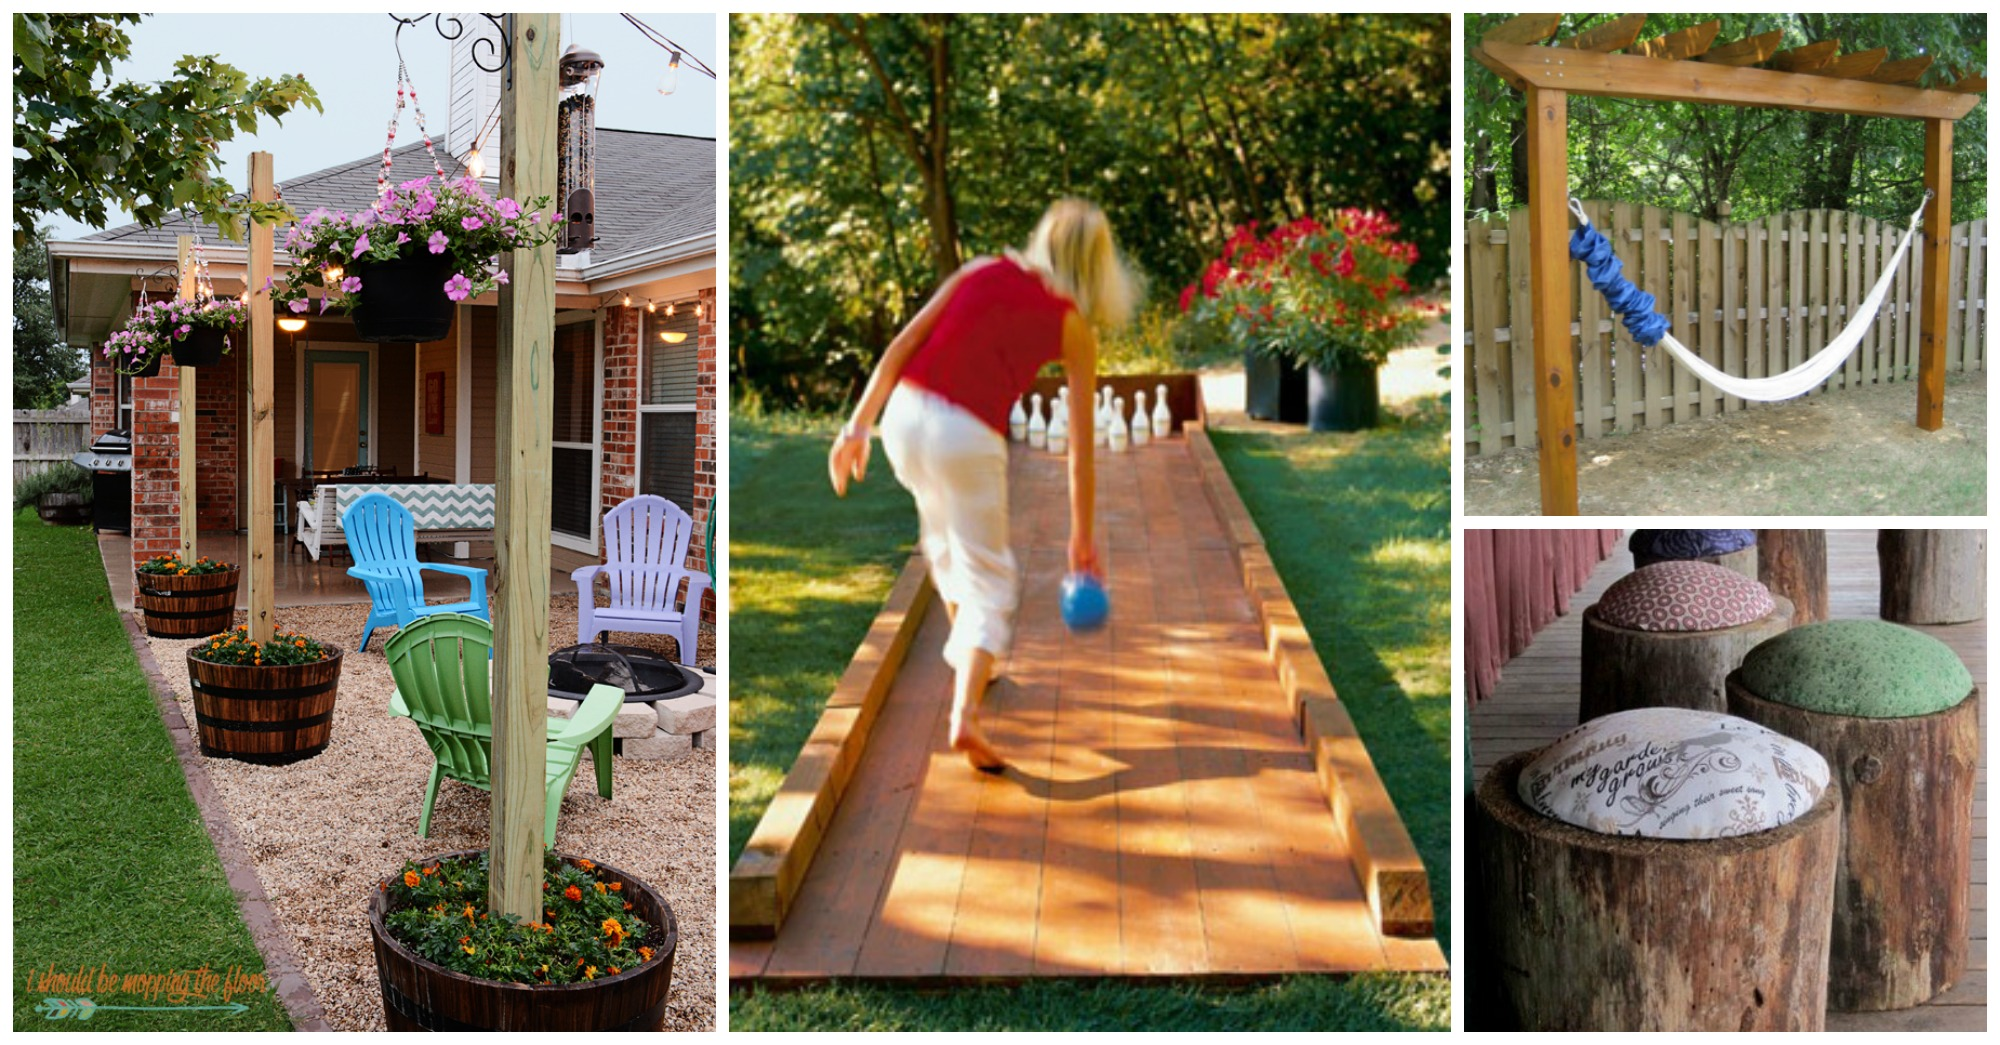 10 Fantastic DIY Wooden Projects For Your Yard You Should ... on Wooded Backyard Ideas id=32300